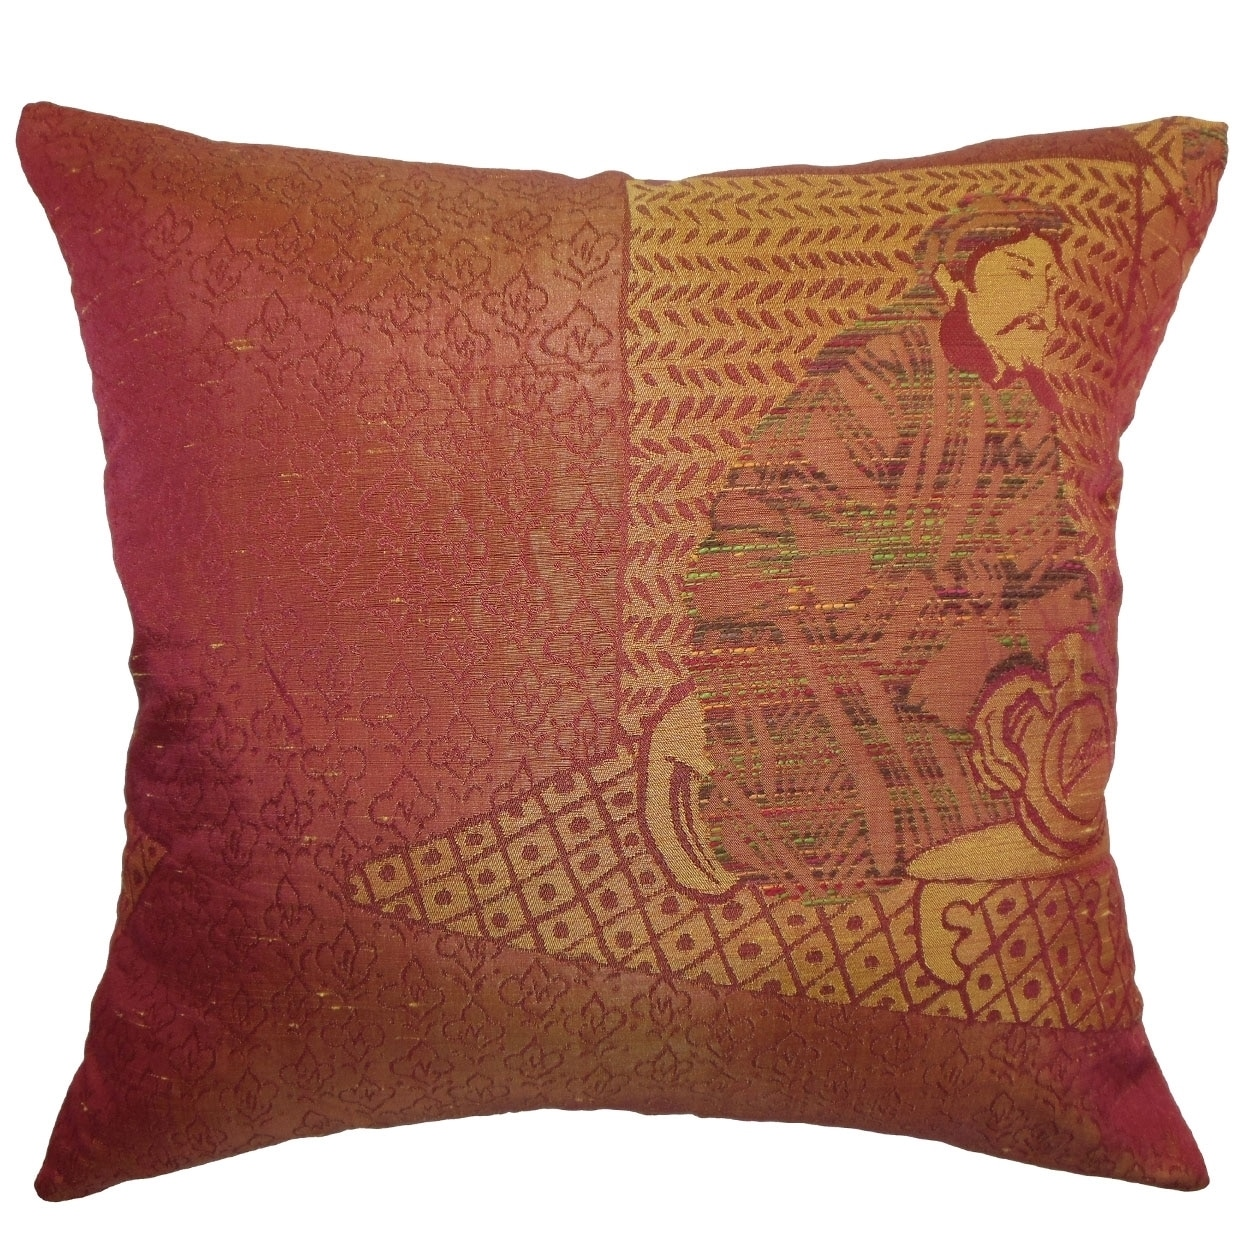 PILLOW COLLECTION INC Harb Copper Traditional 18-inch Throw Pillow